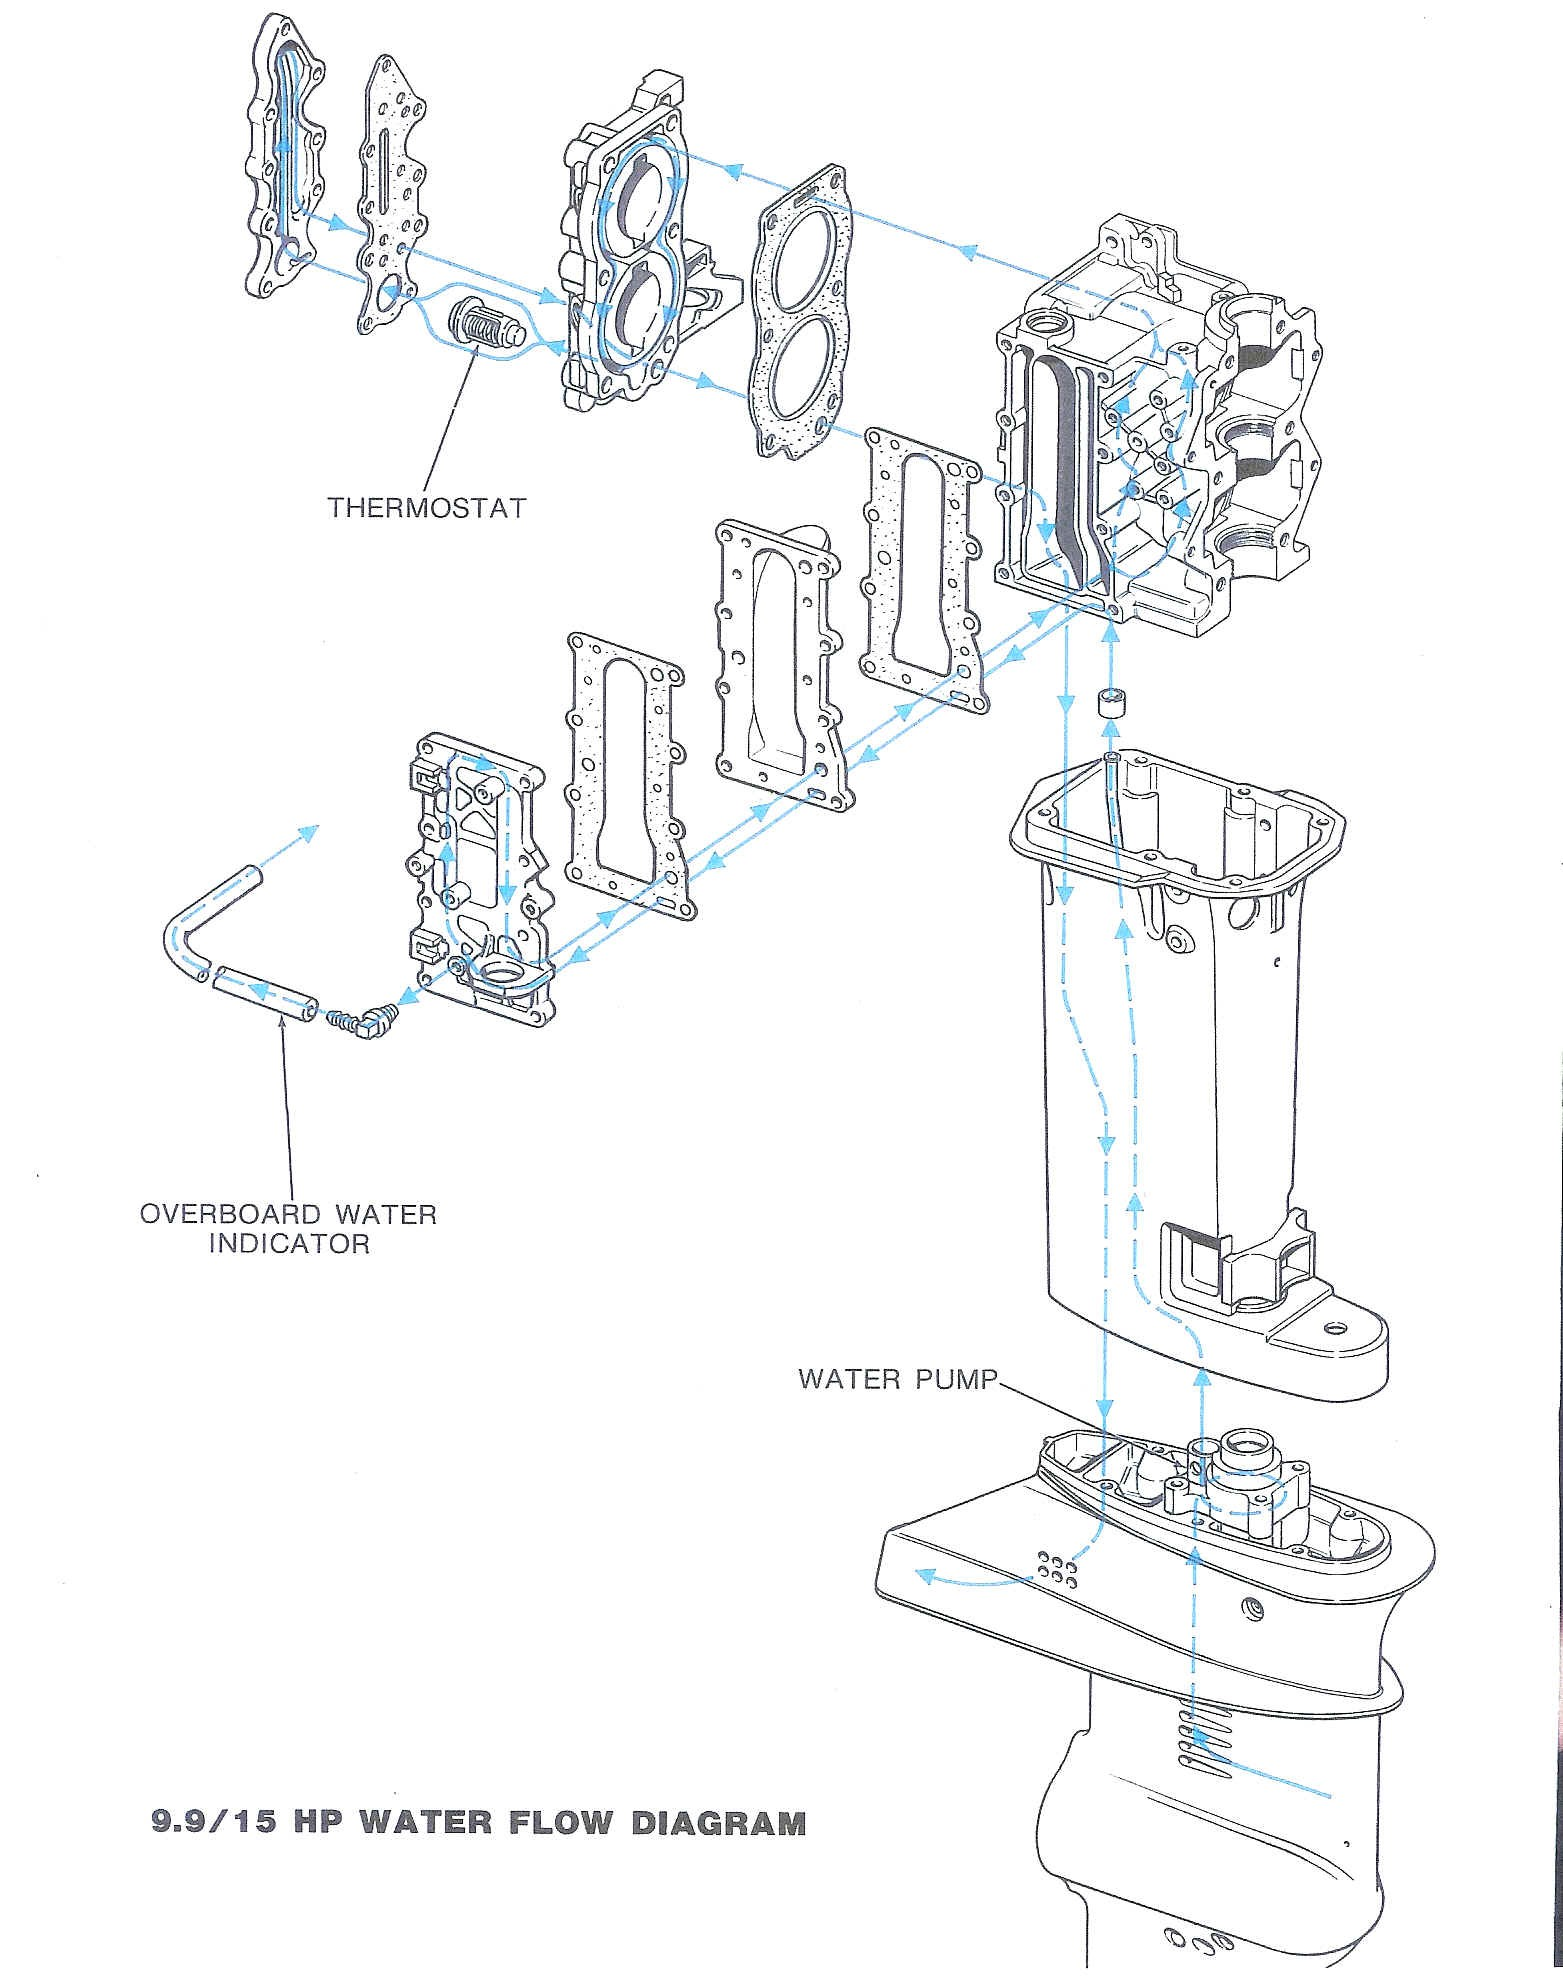 4 Stroke Engine Parts Diagram Maintaining Johnson Evinrude 9 9 Part 1 Of 4 Stroke Engine Parts Diagram